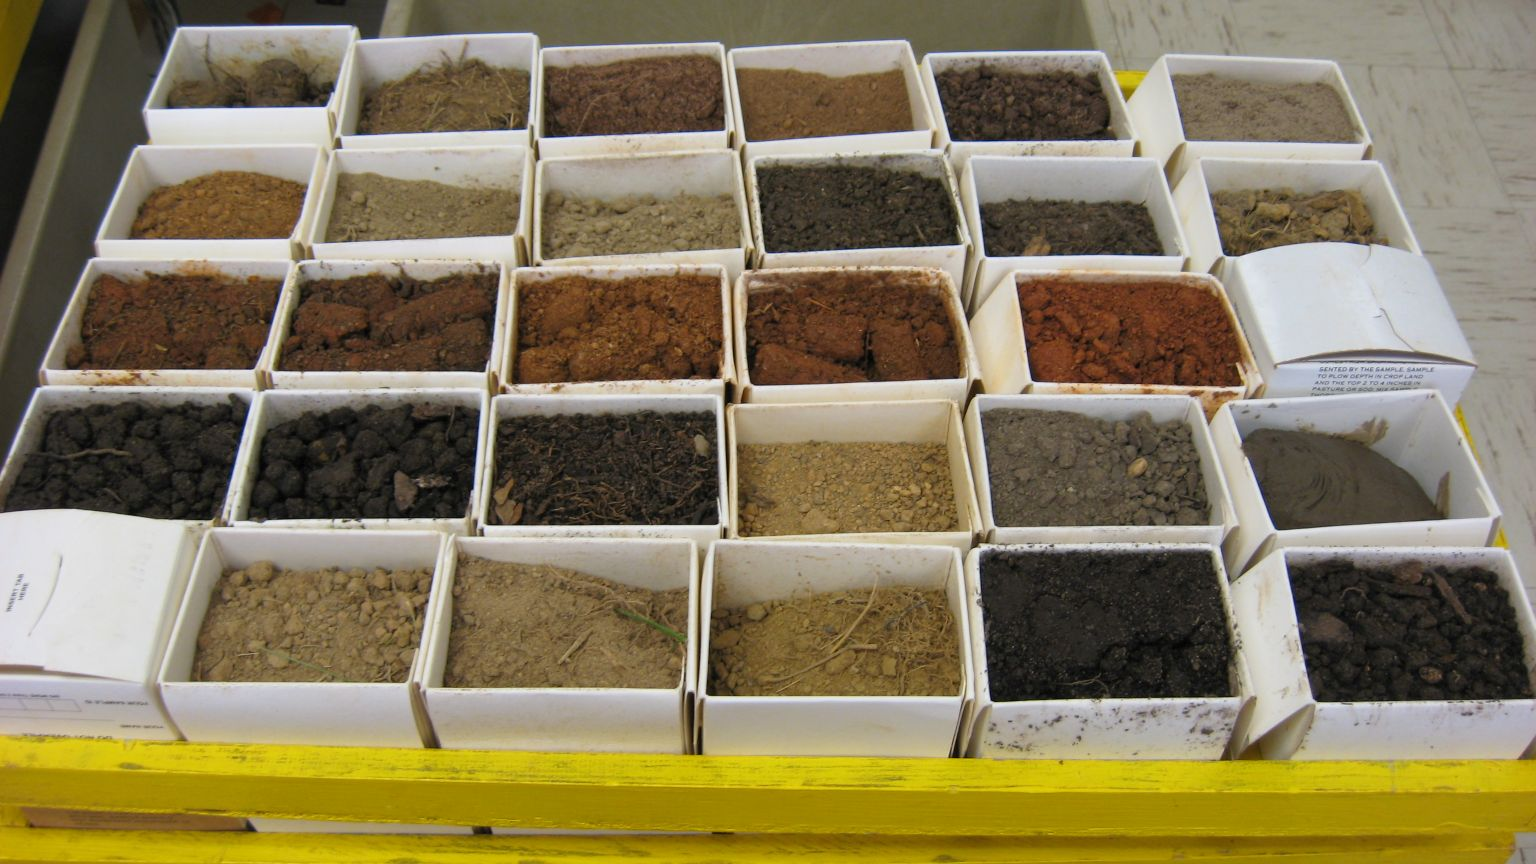 Soil Testing Laboratory Helps Save Money And The